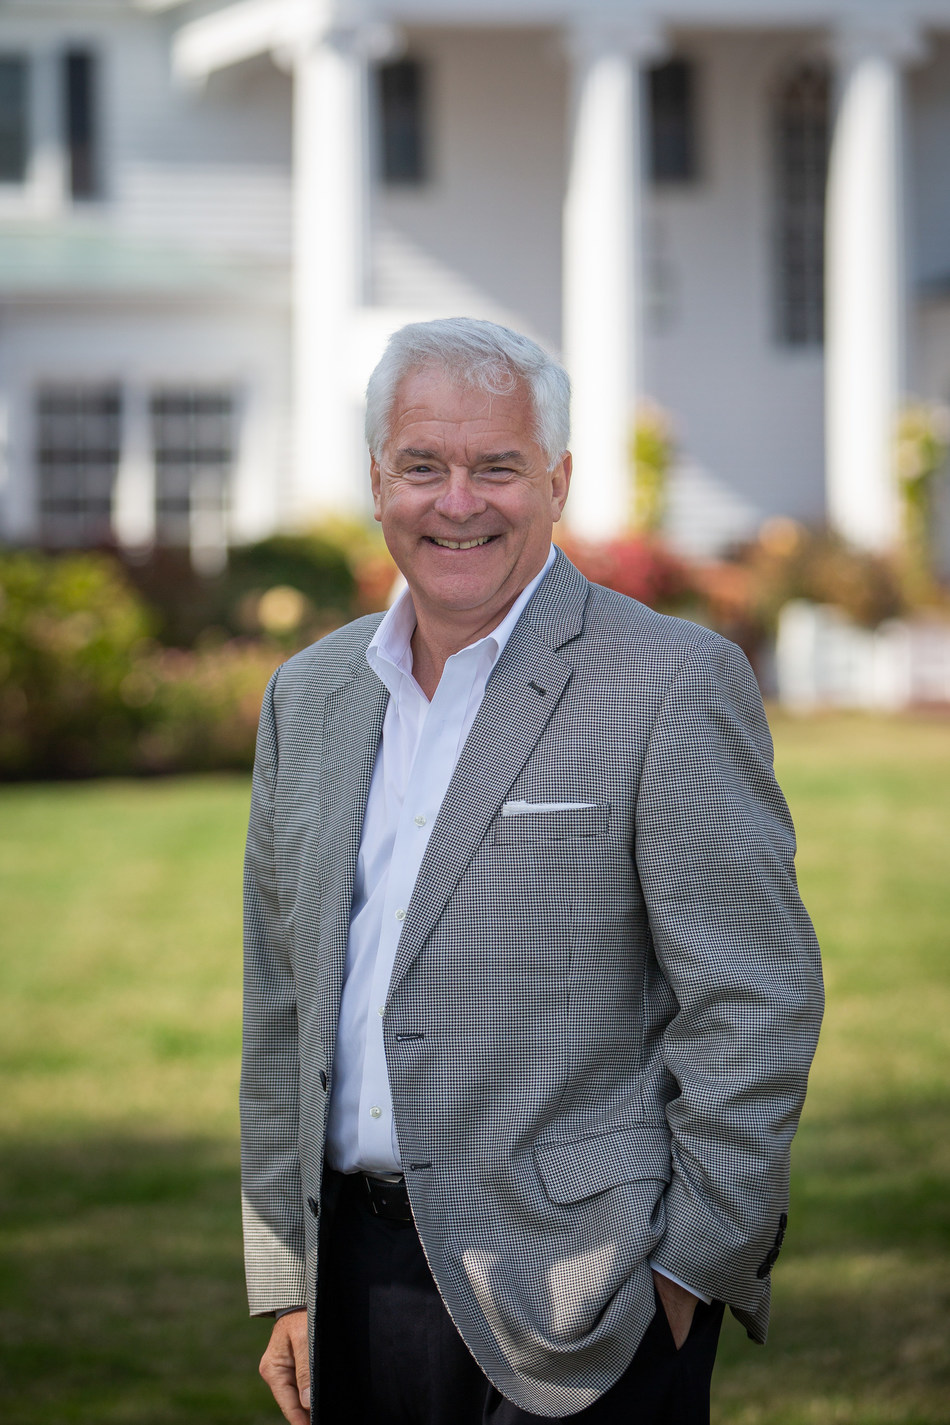 Michael Hoffmann, Managing Director for Perry Cabin Resorts & Golf.